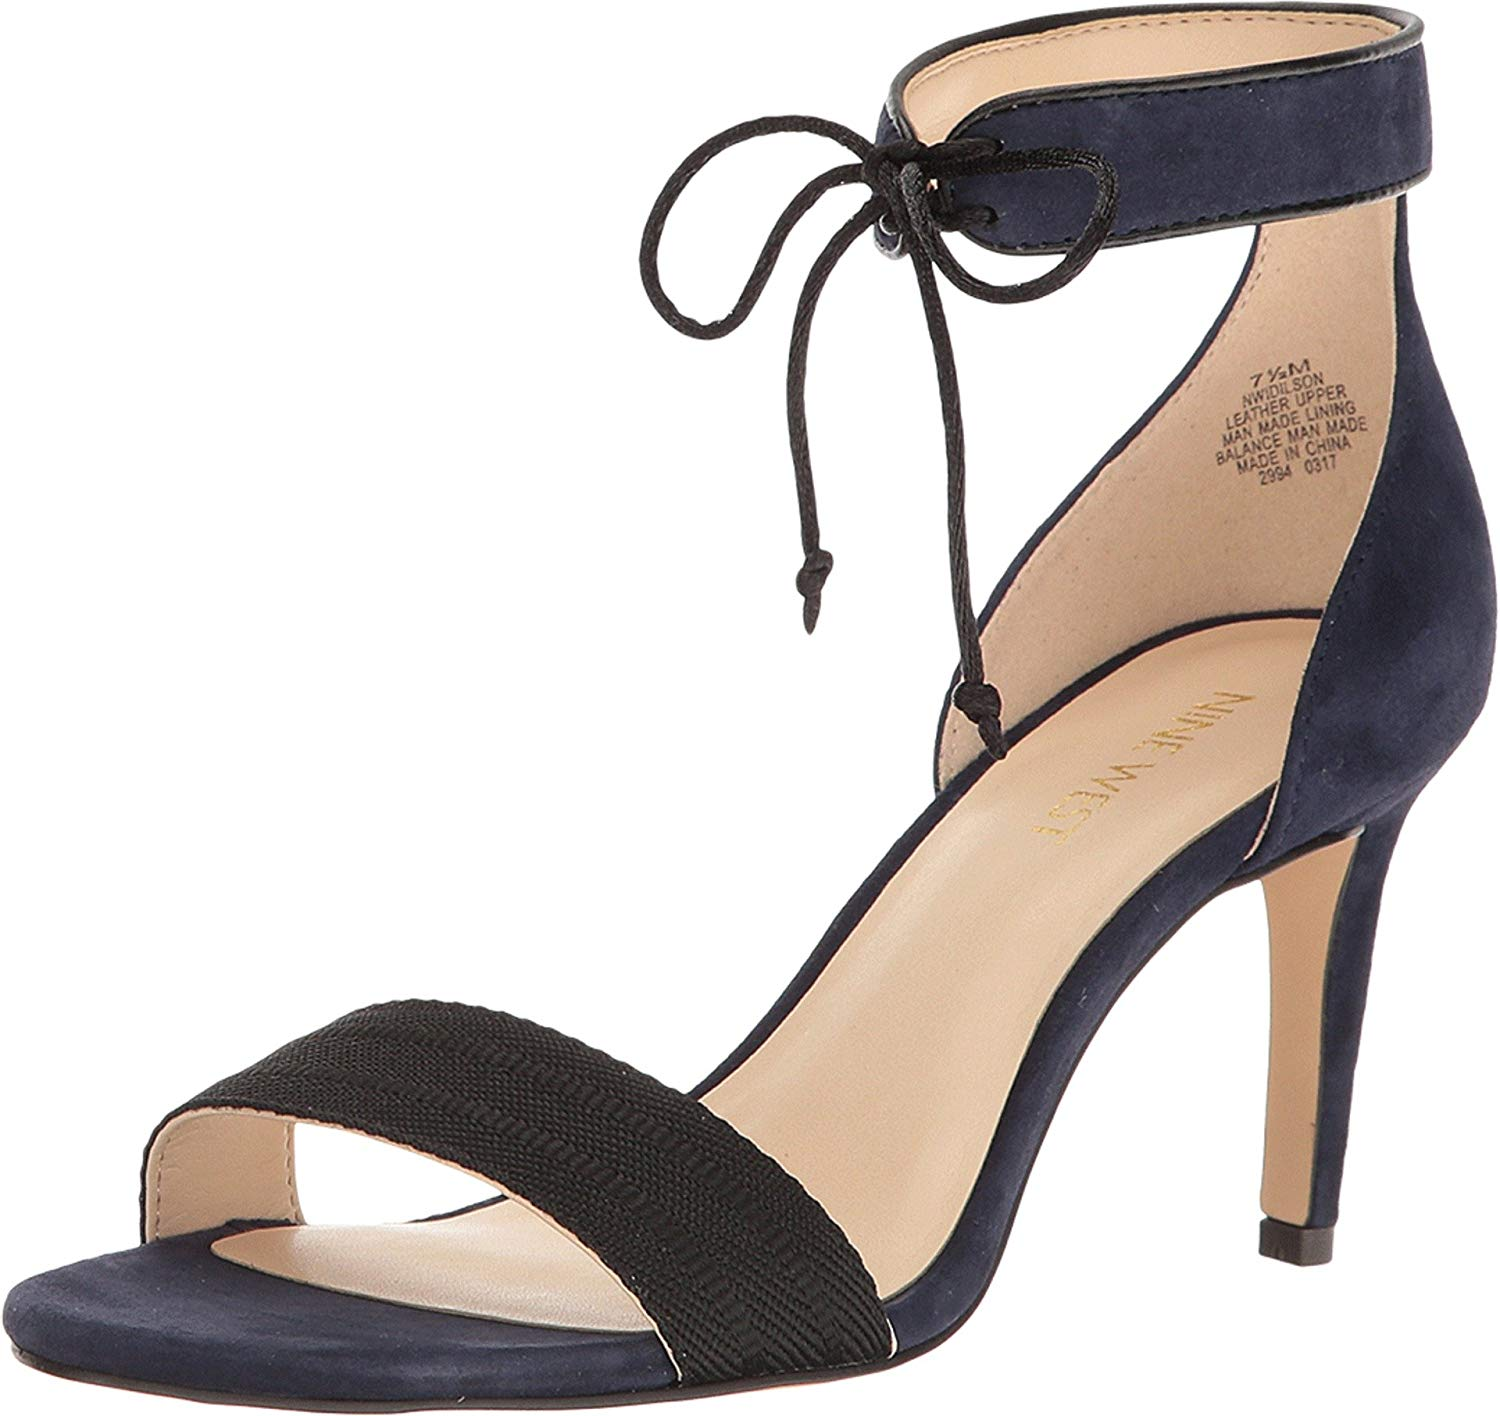 02a1887fa59 Nine West Womens Idilson Open Toe Ankle Strap Classic Pumps